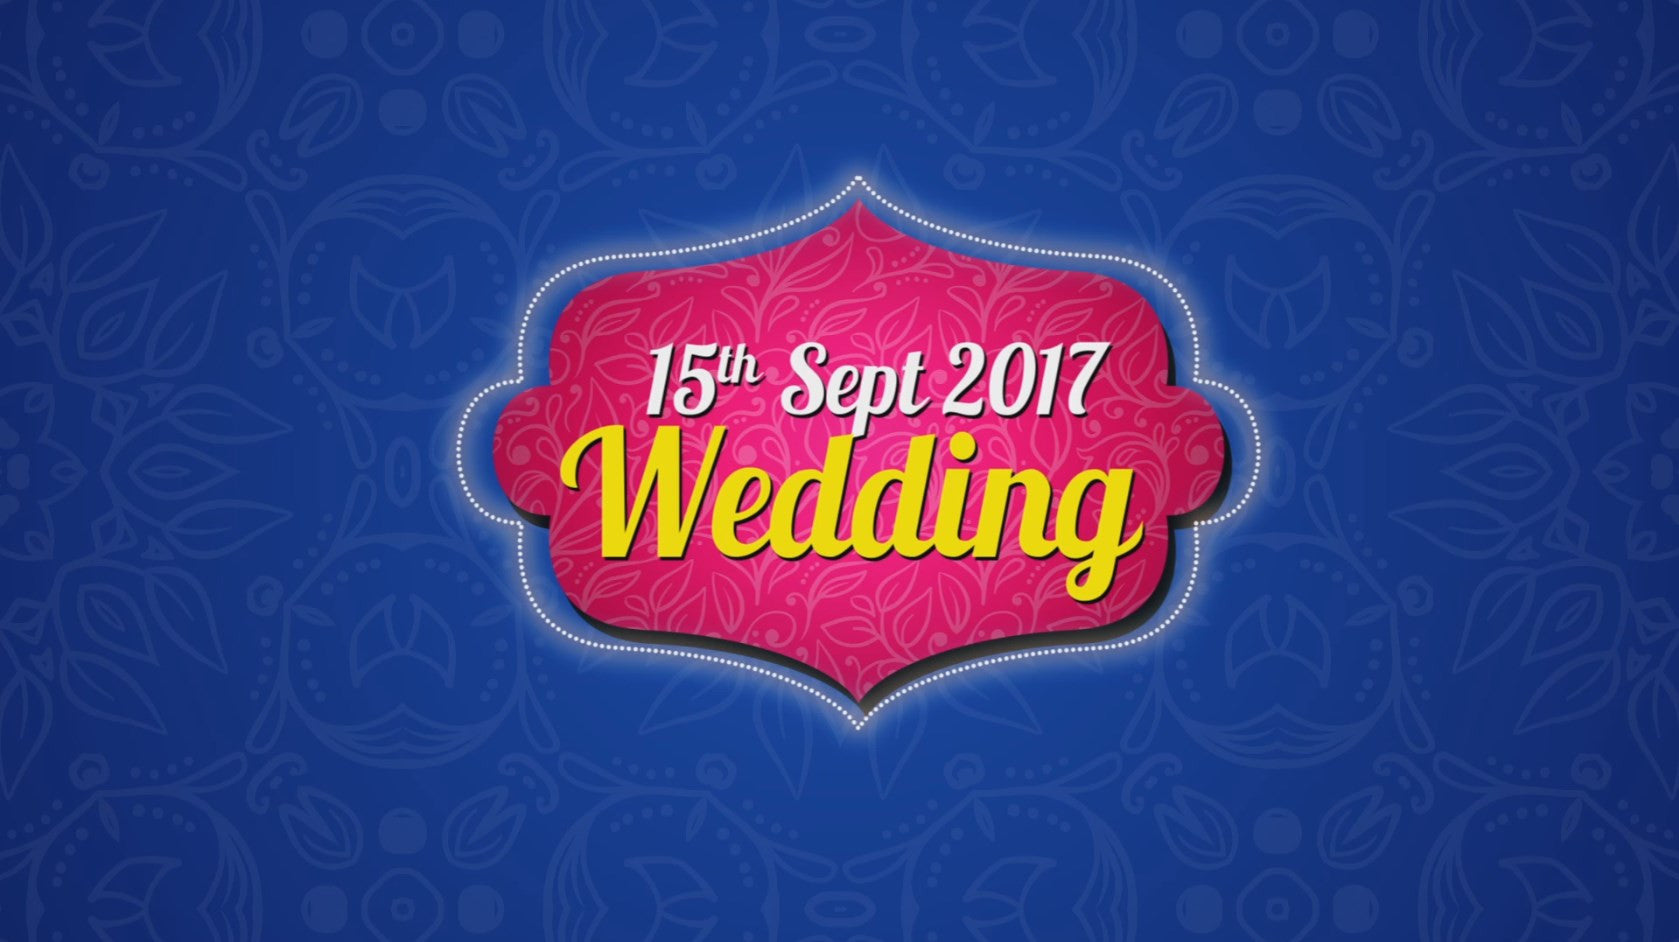 Grand Wedding Invite-38 sec(USD 99$)